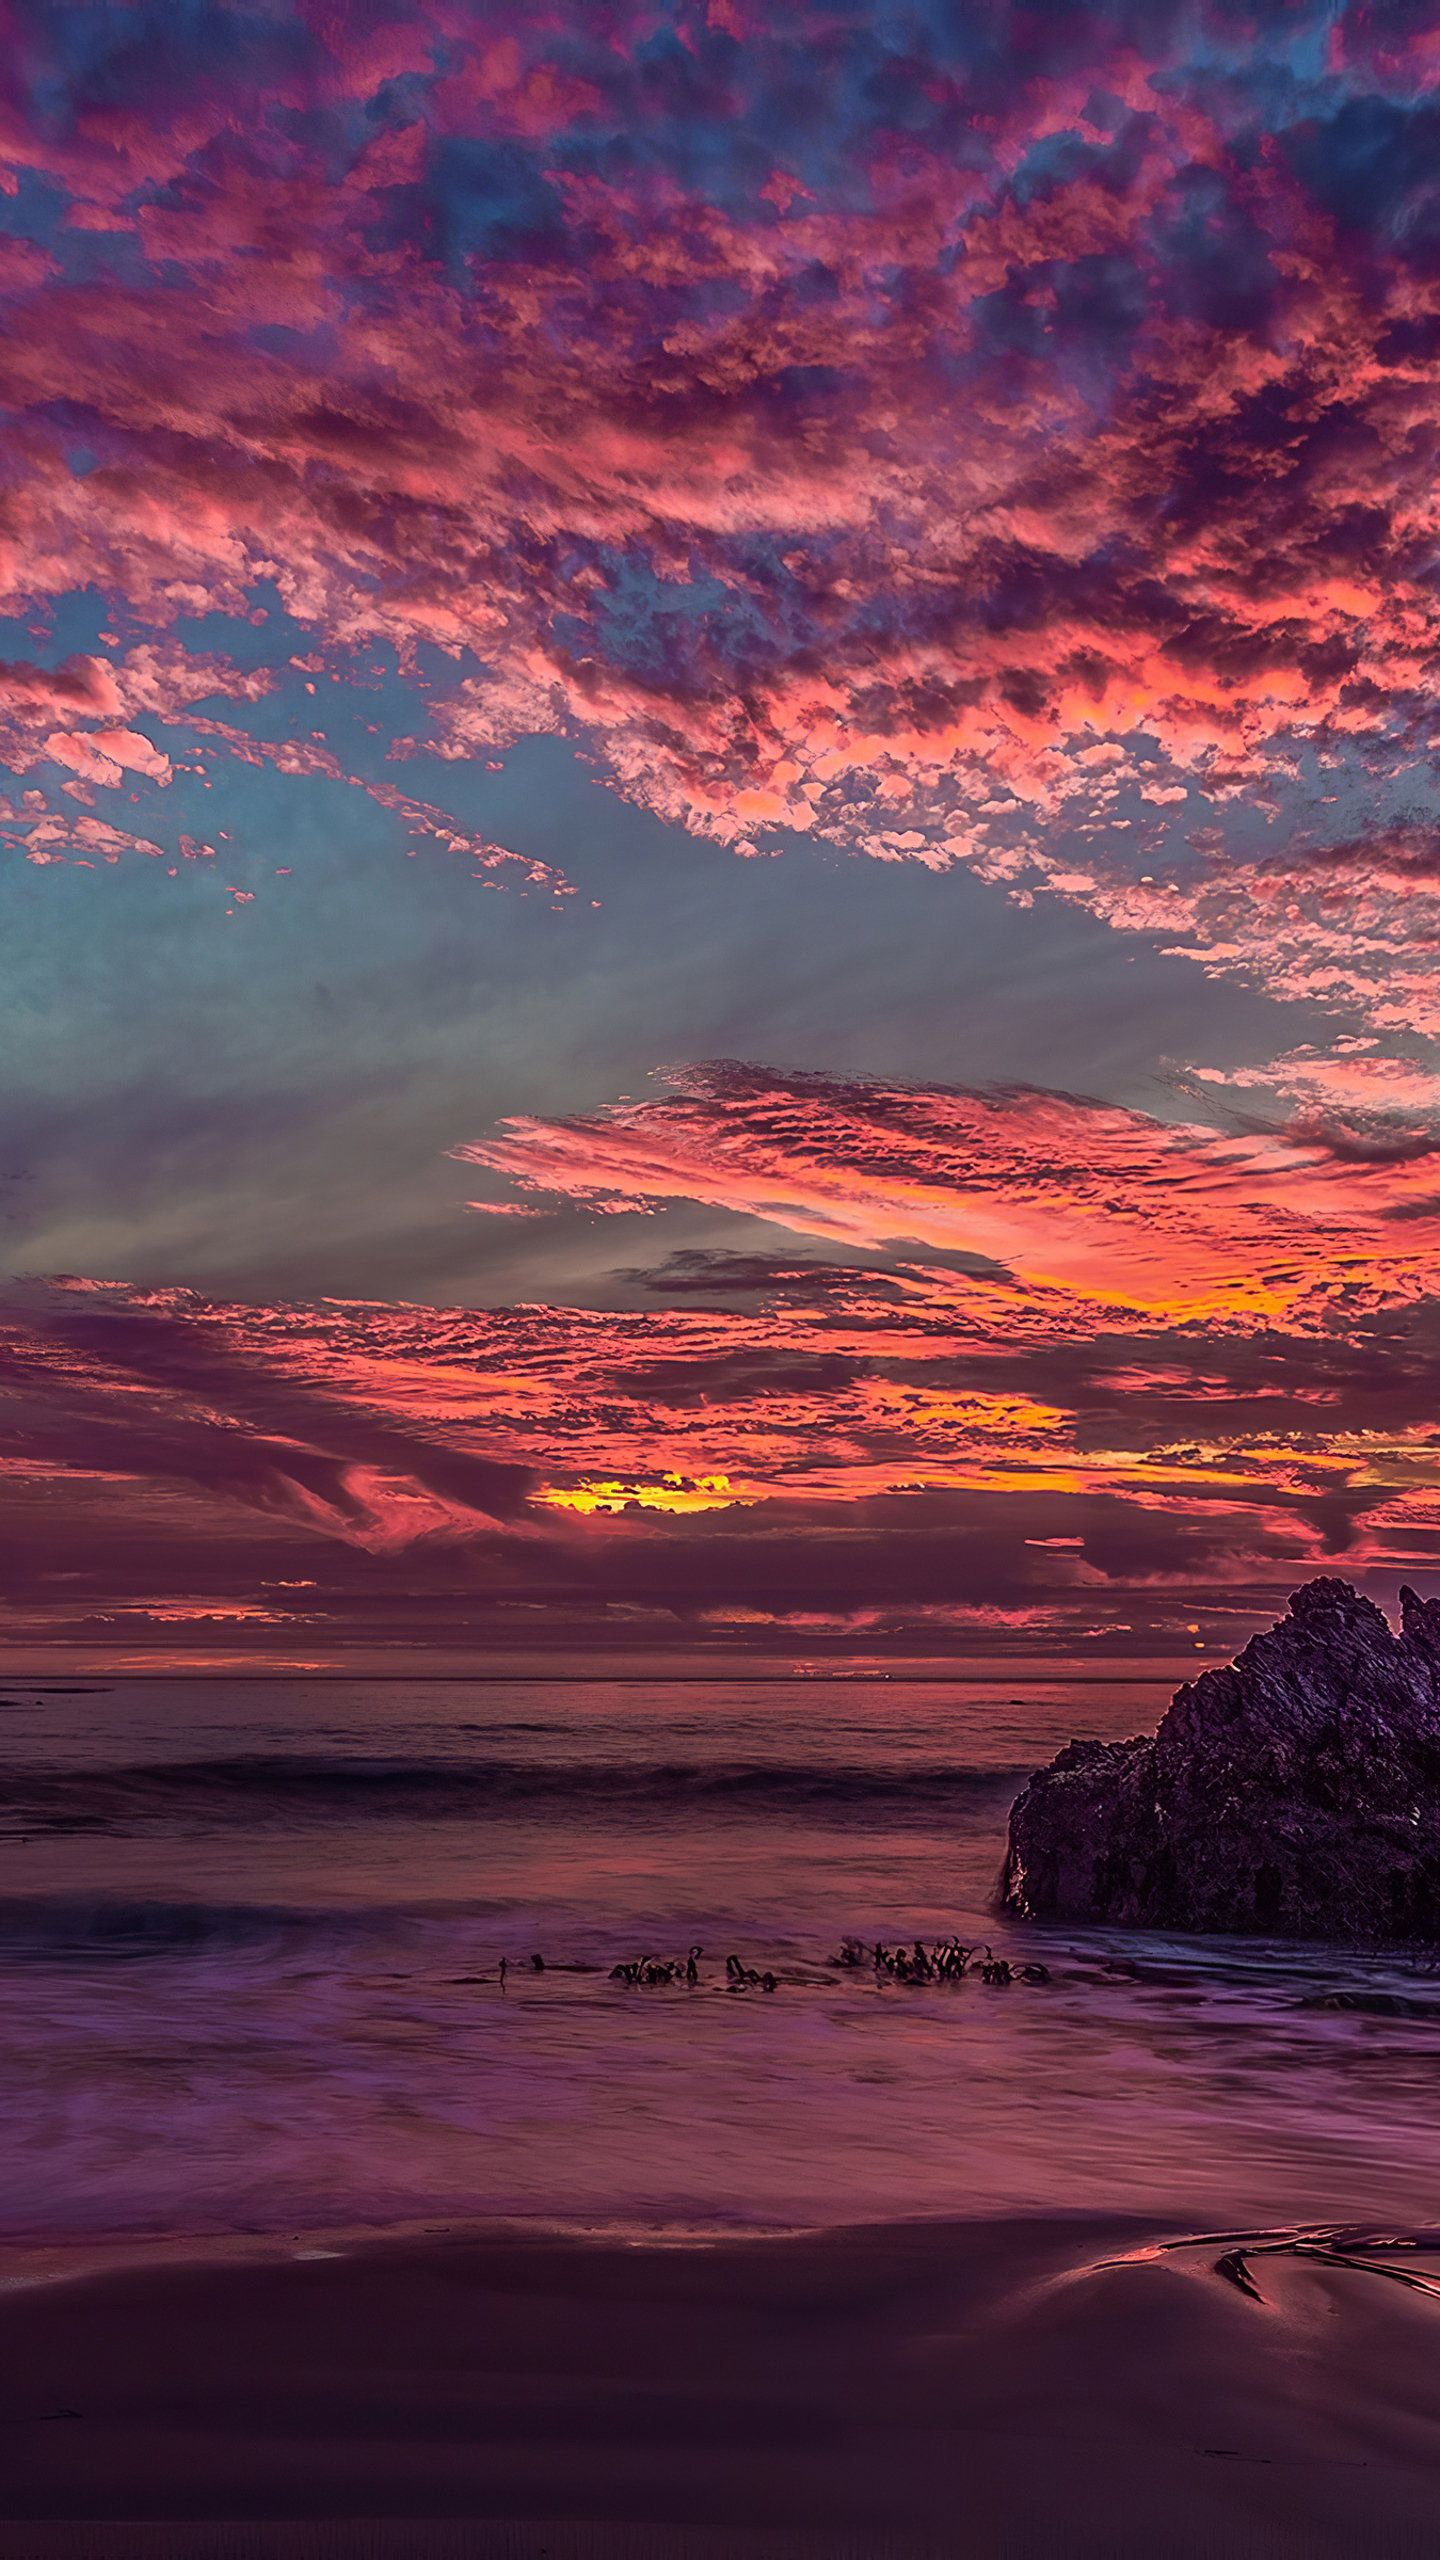 Red Rock Clouds Sunset 4K HD Wallpaper (1440x2560) (With